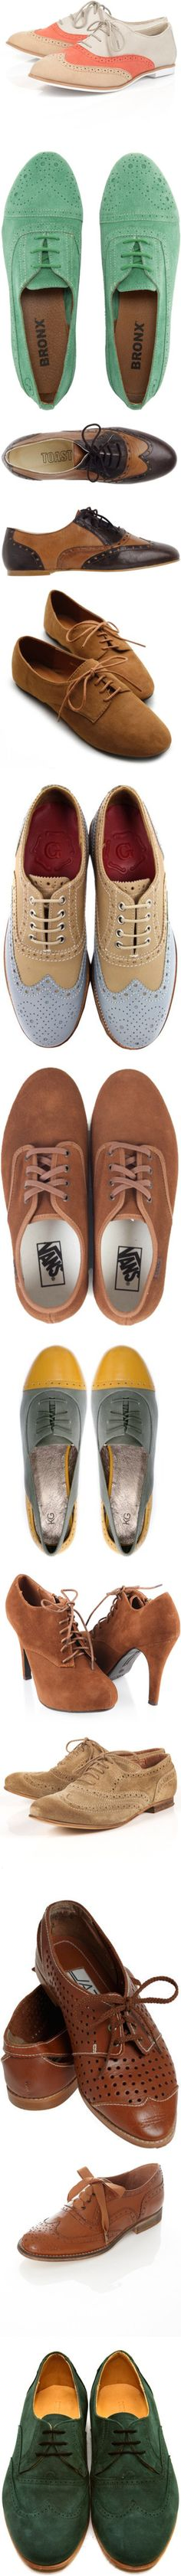 """""""oxford shoes..."""" by diana1990 ❤ liked on Polyvore"""